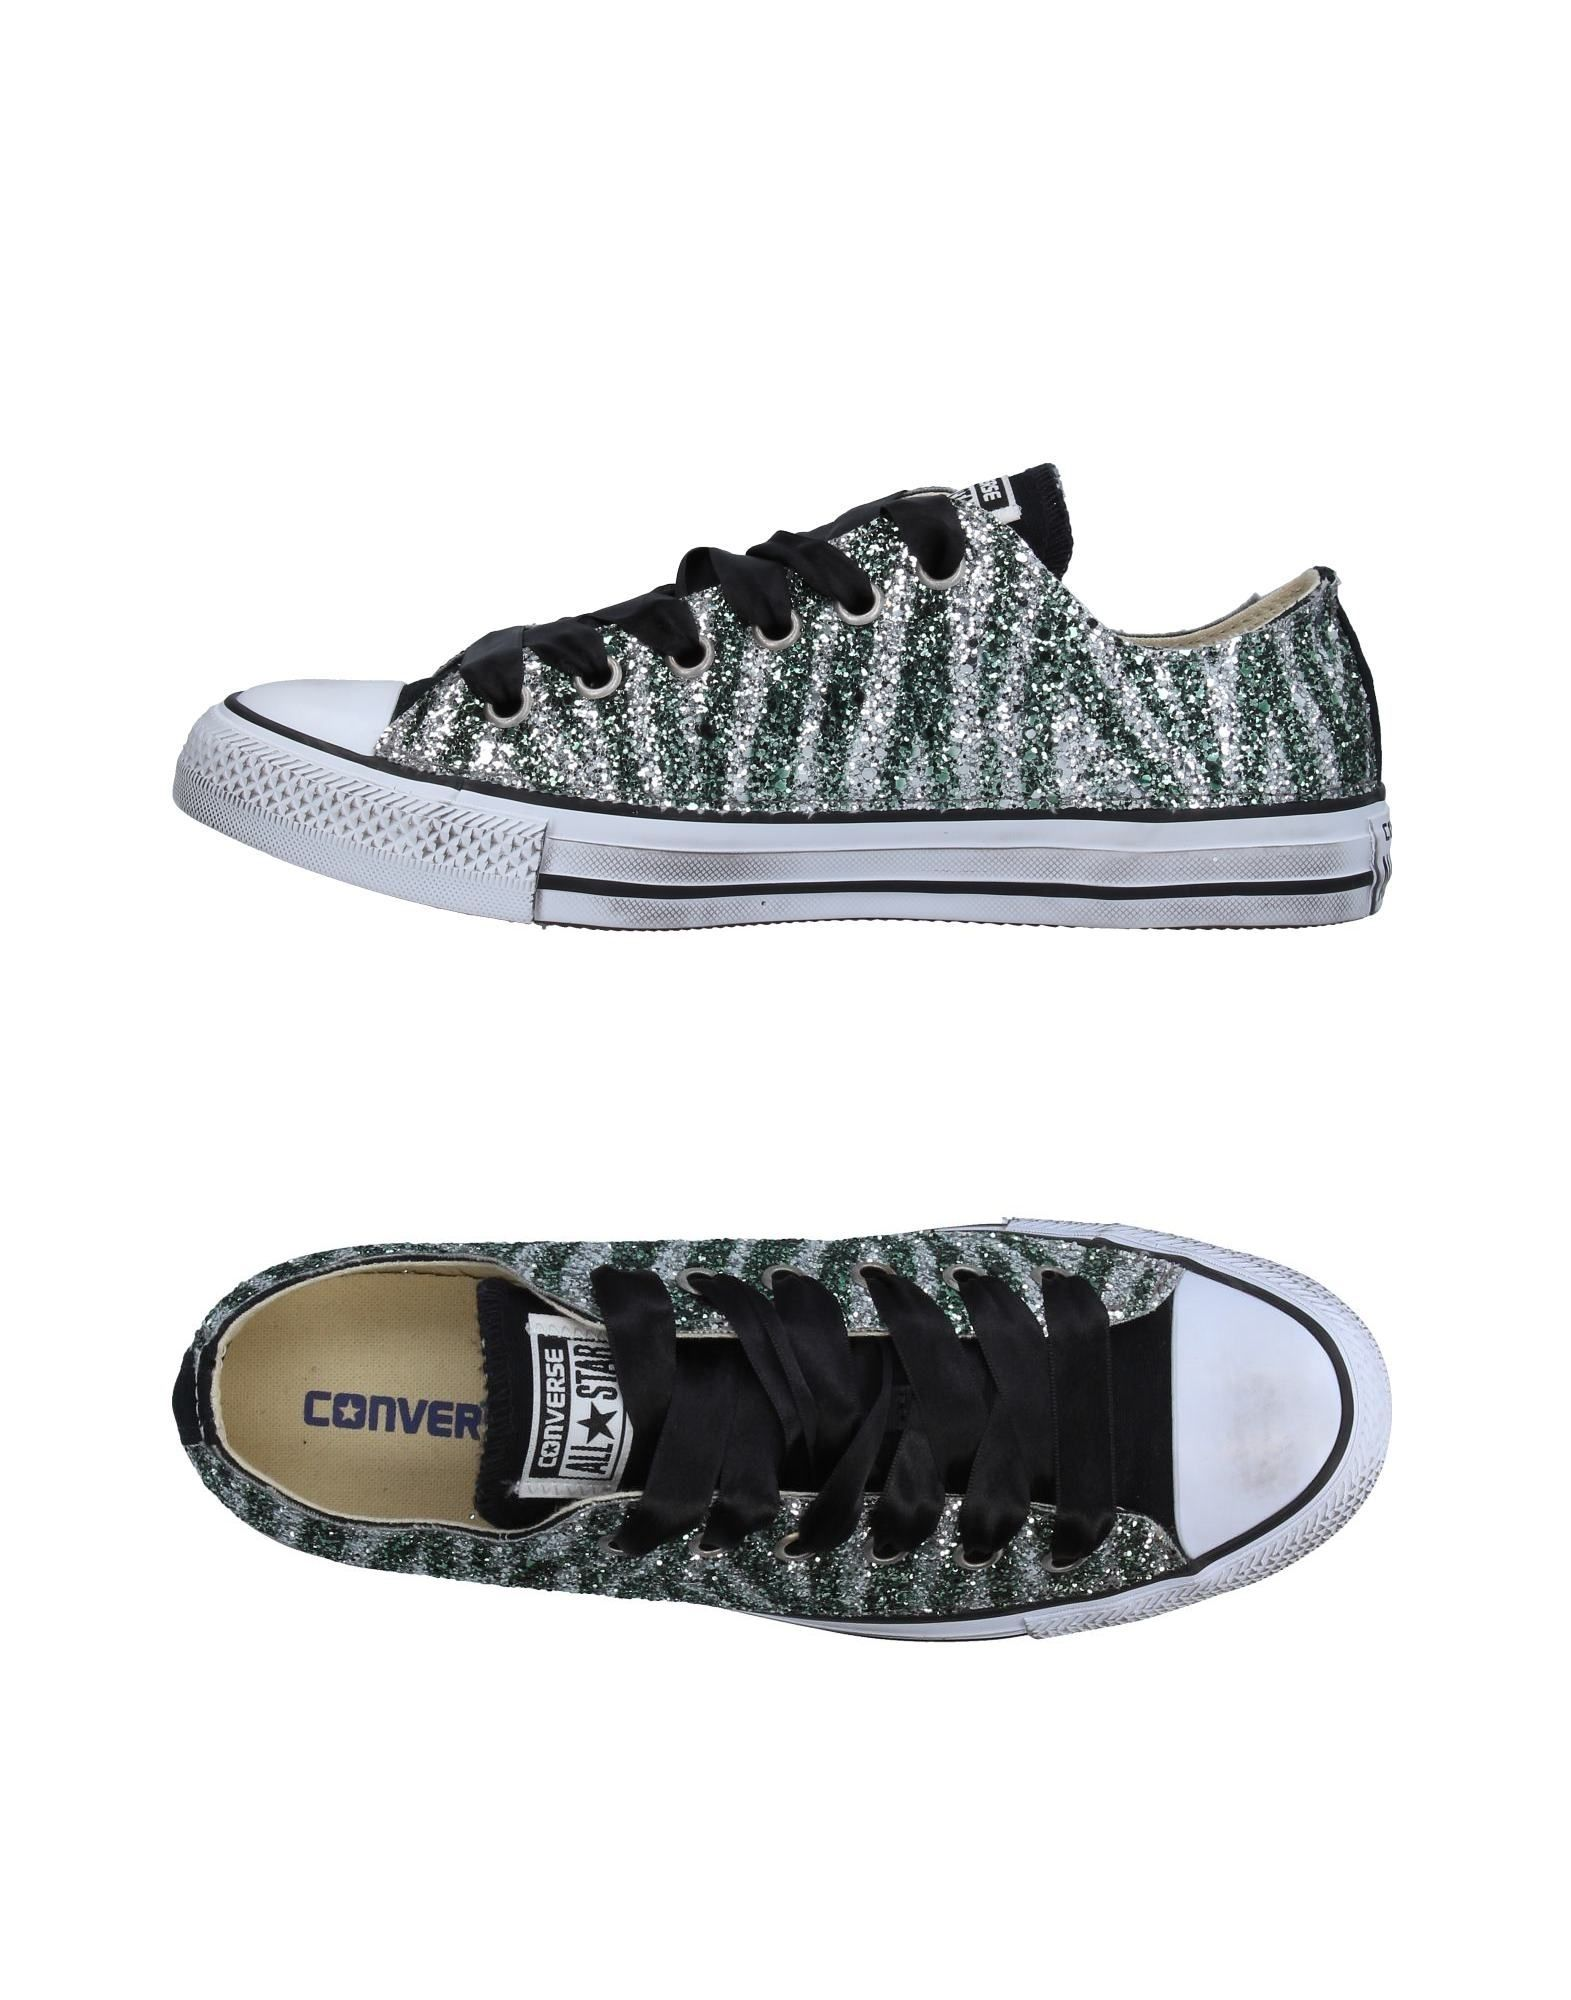 CONVERSE LIMITED EDITION Низкие кеды и кроссовки new mf8 eitan s star icosaix radiolarian puzzle magic cube black and primary limited edition very challenging welcome to buy